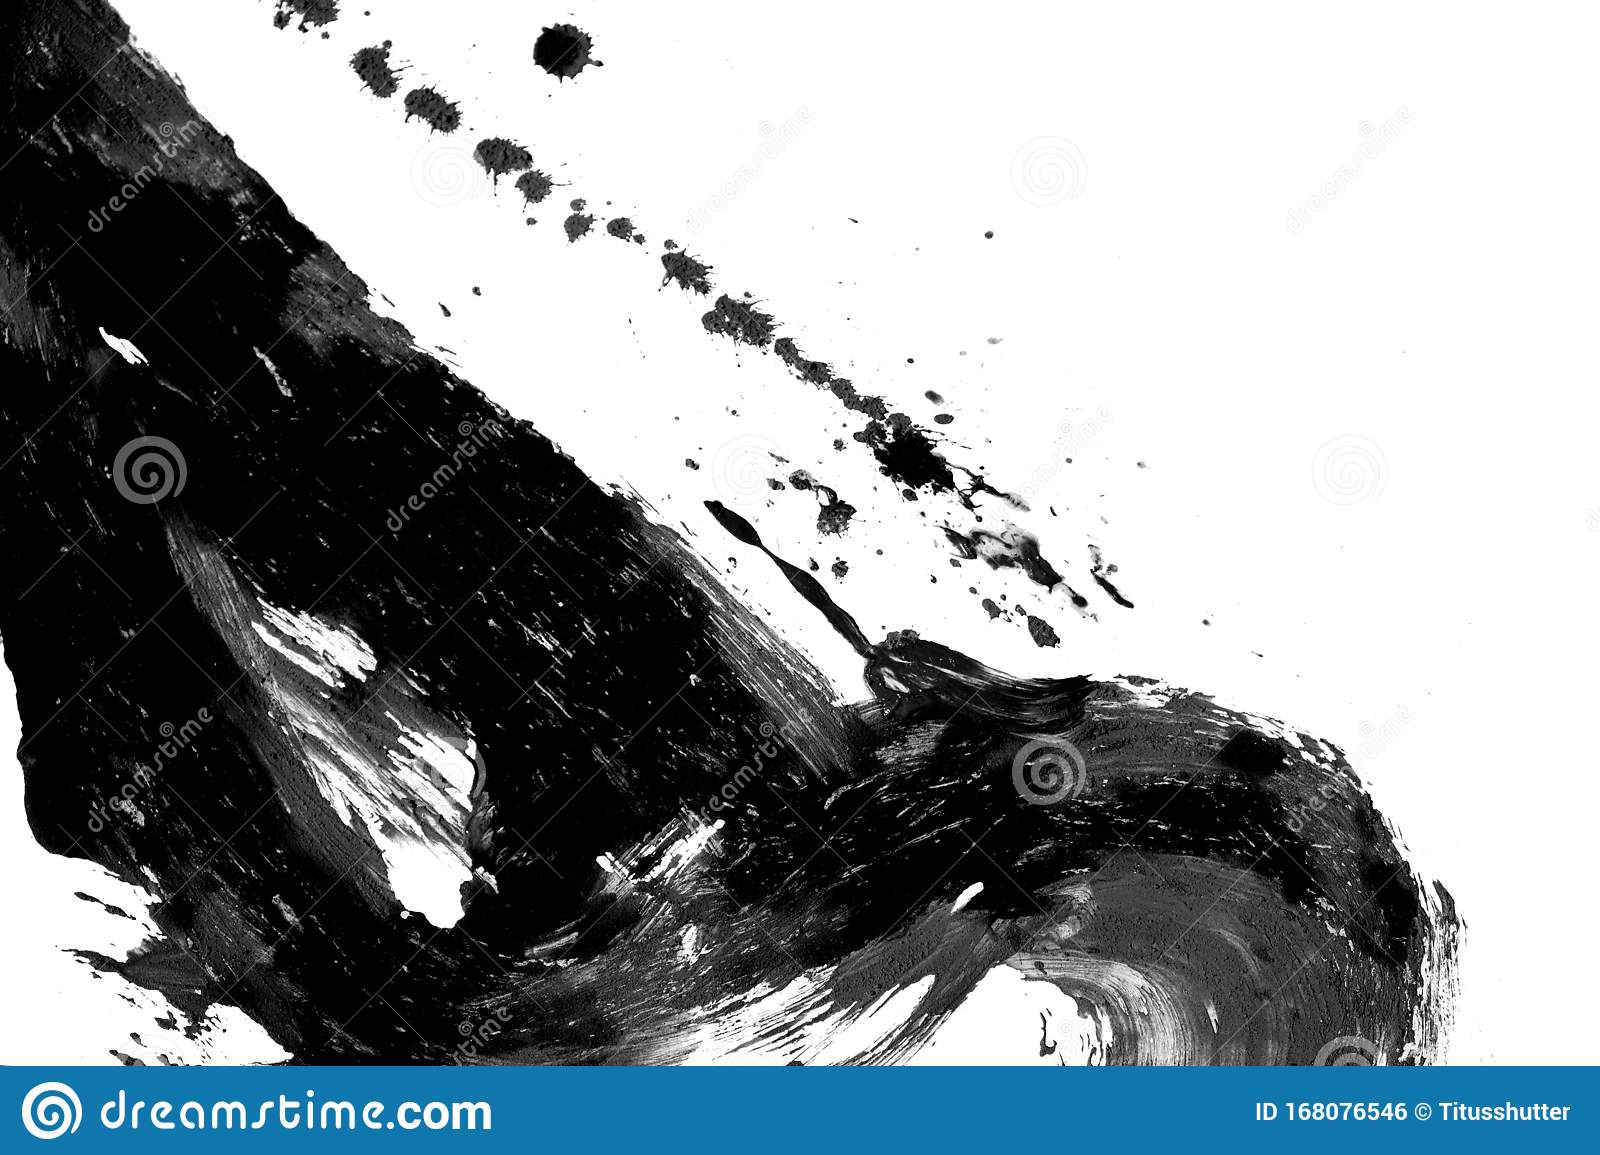 Texture Abstract Japanese Ink On White Paper Background Stock Photo Image Of Texture Brush 168076546